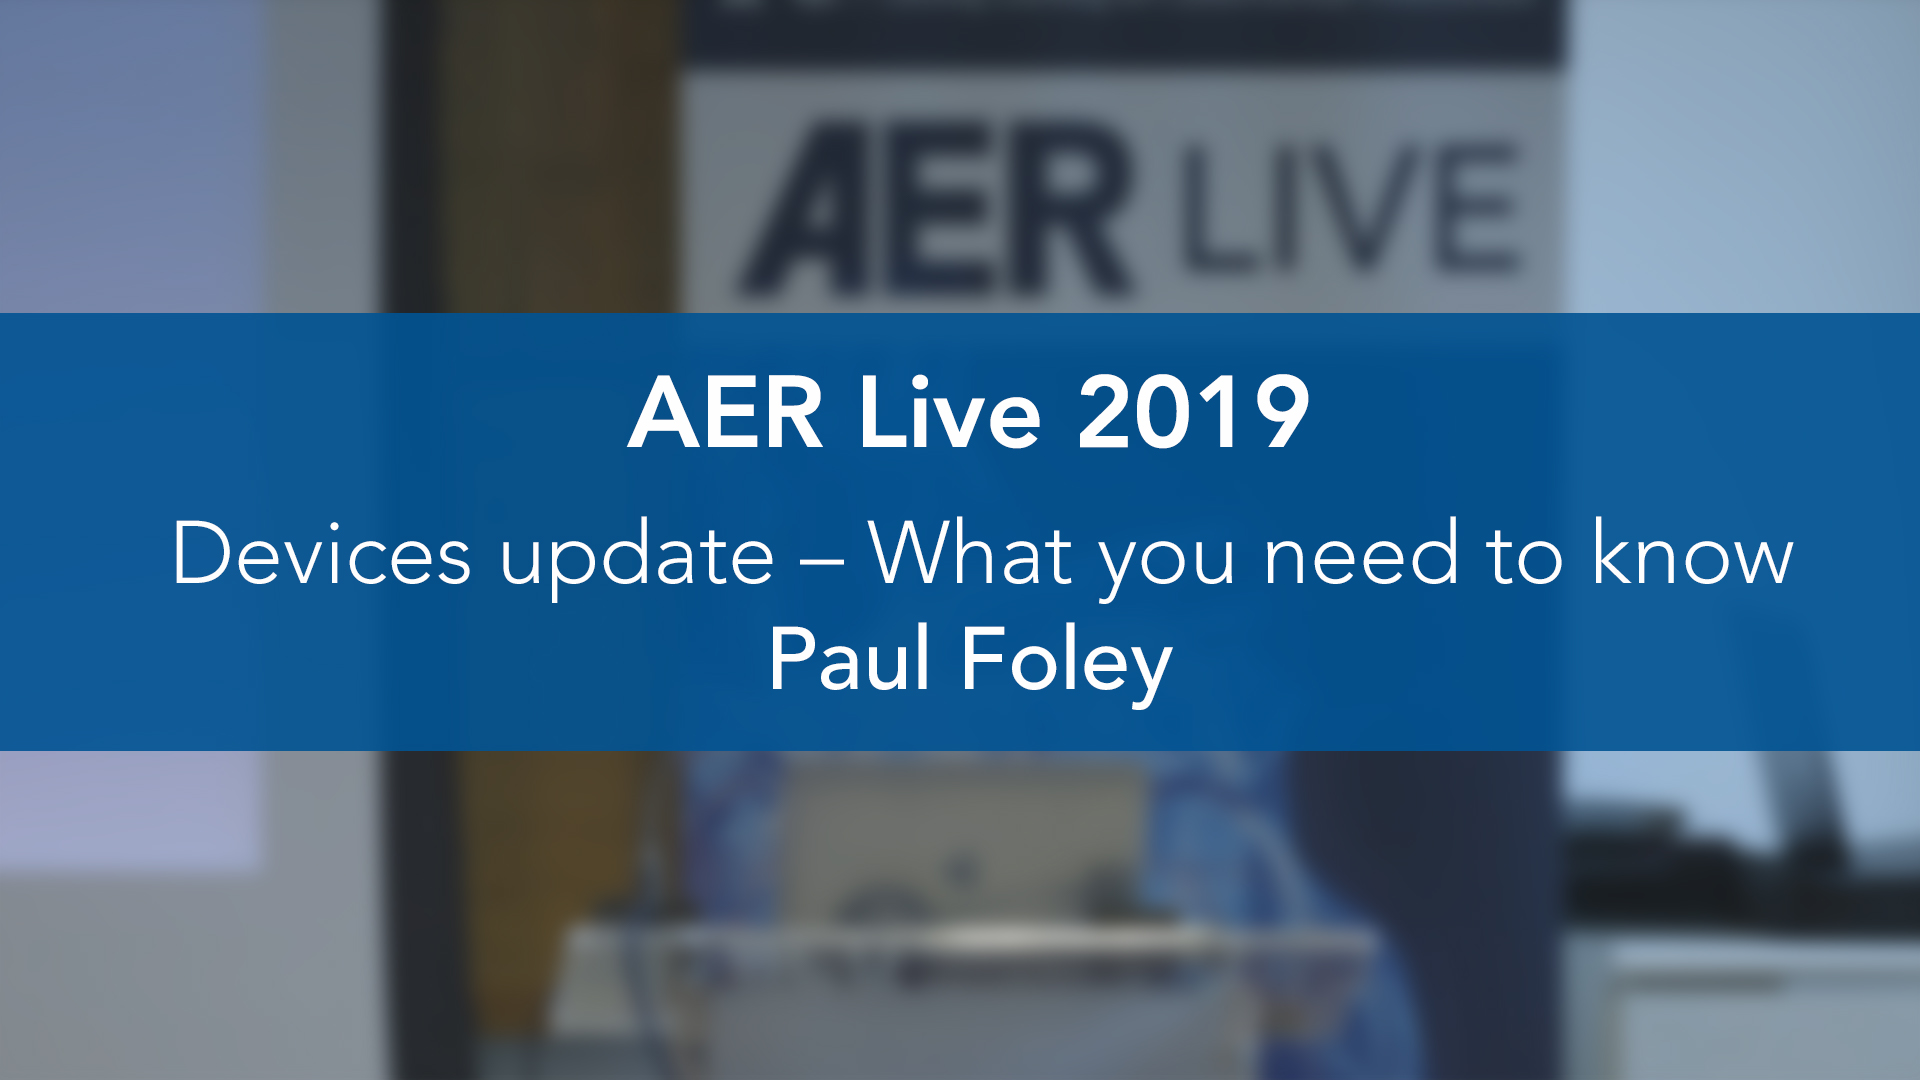 AER: Live 2019: Devices update – What you need to know — Paul Foley